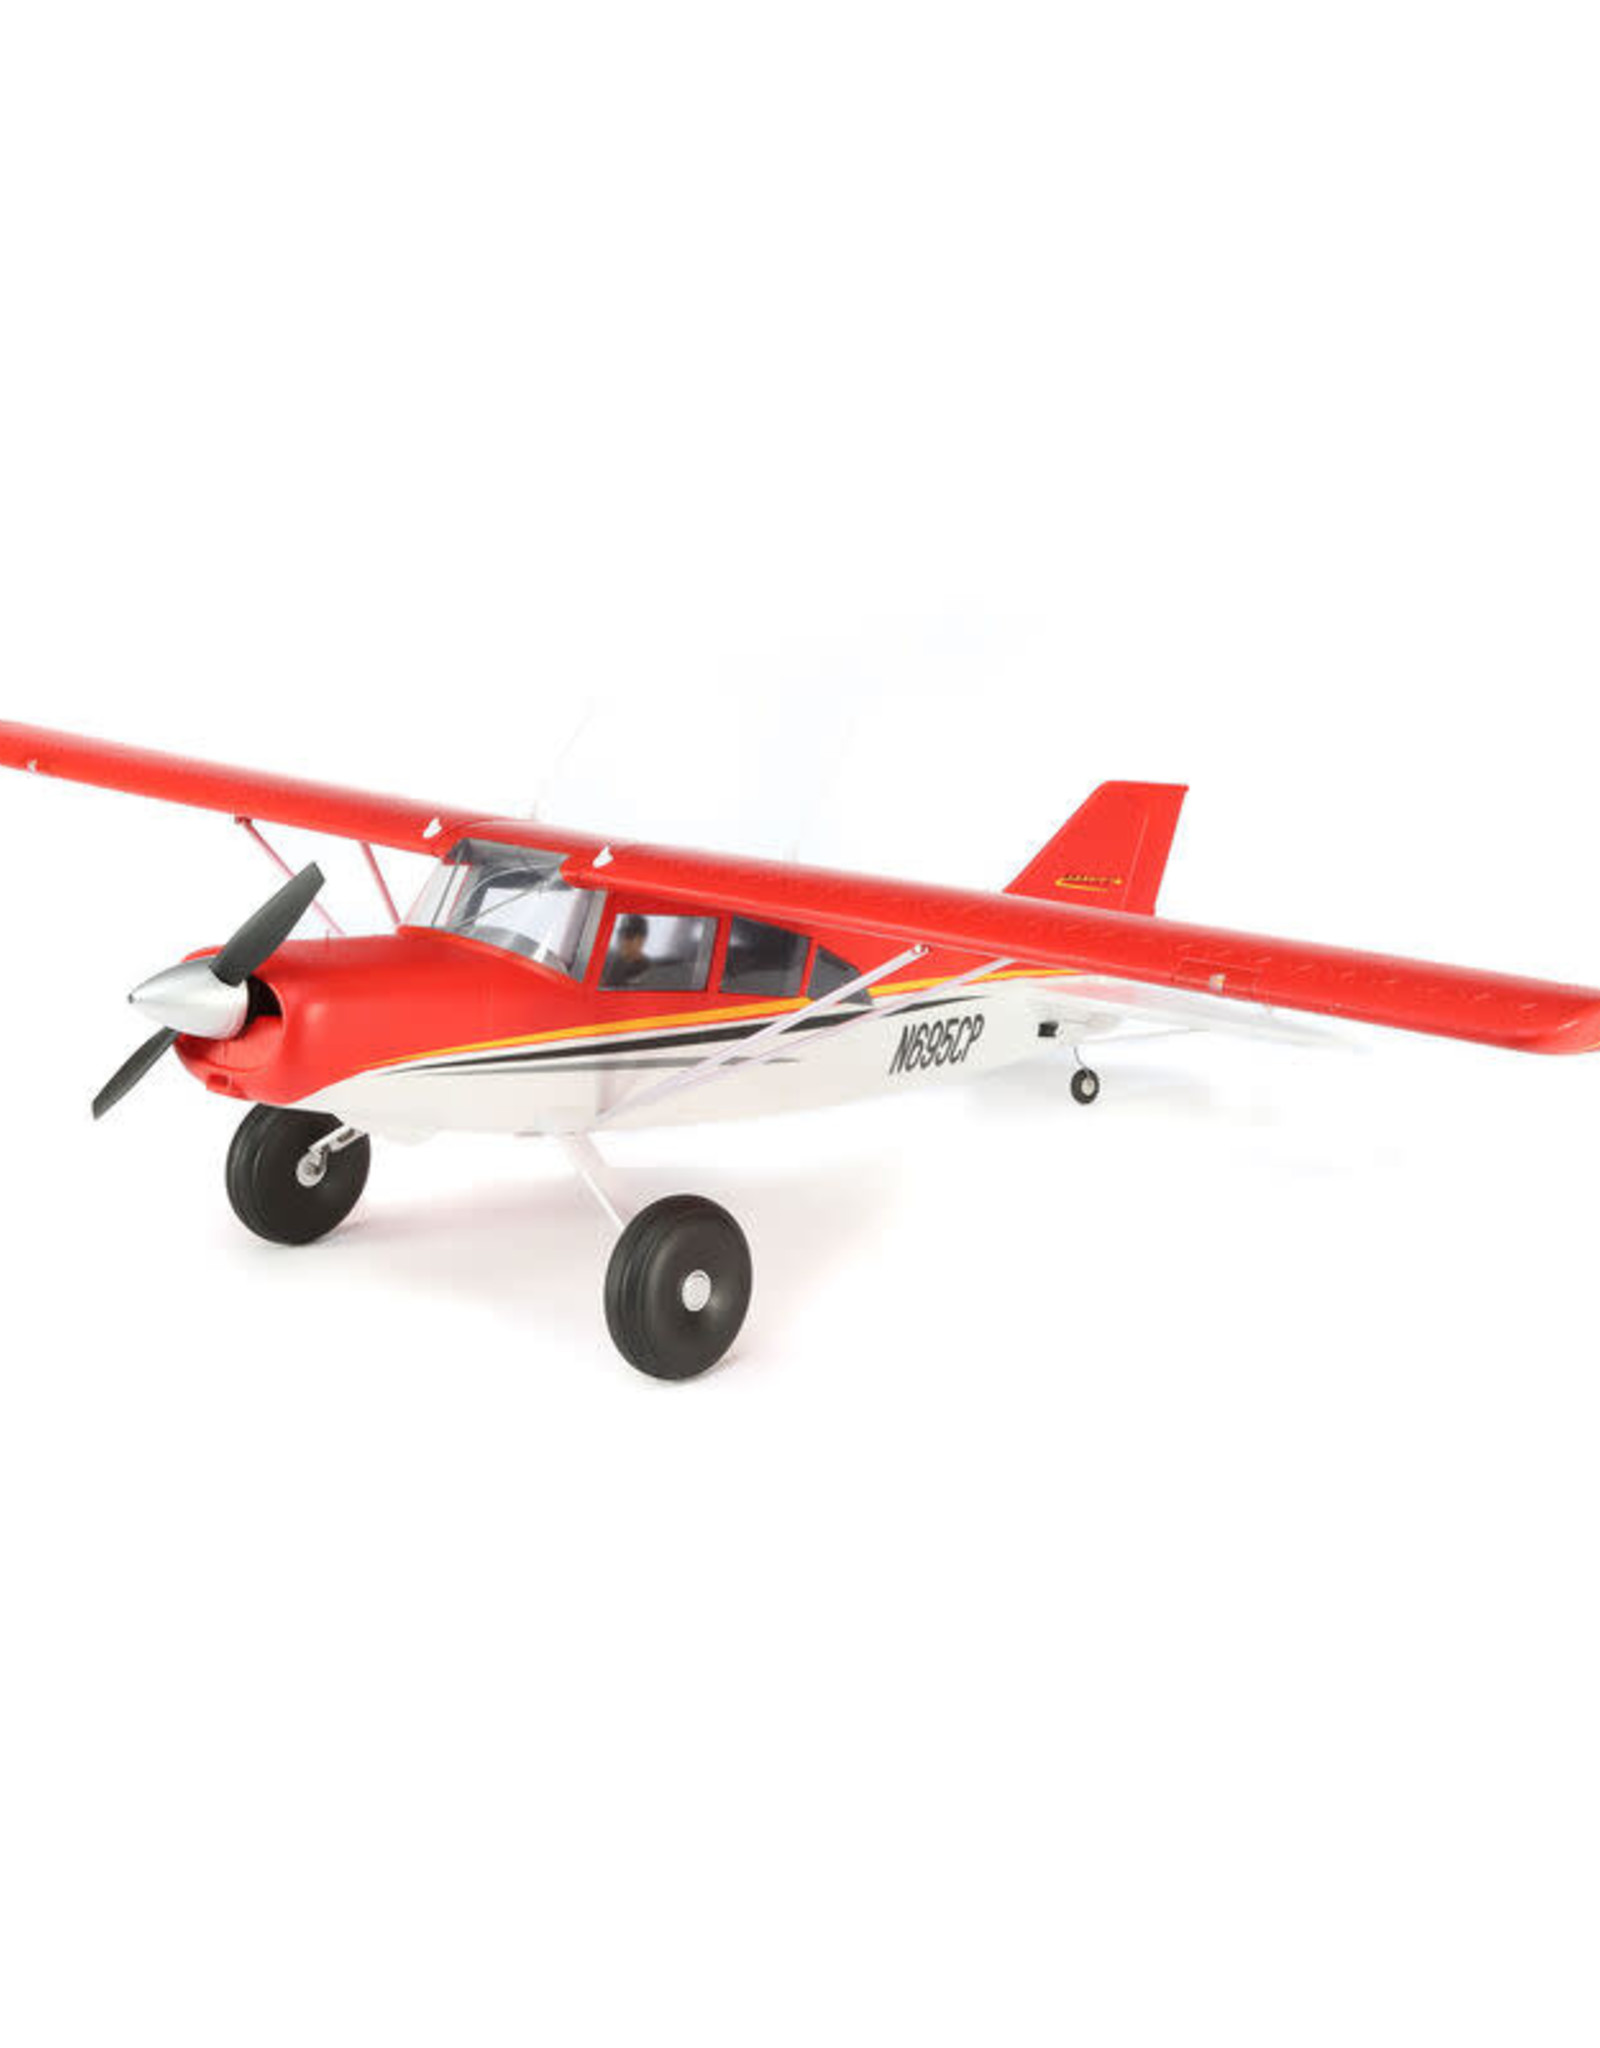 EFL EFL5350 Maule M-7 1.5m BNF Basic with AS3X and SAFE Select, includes Floats